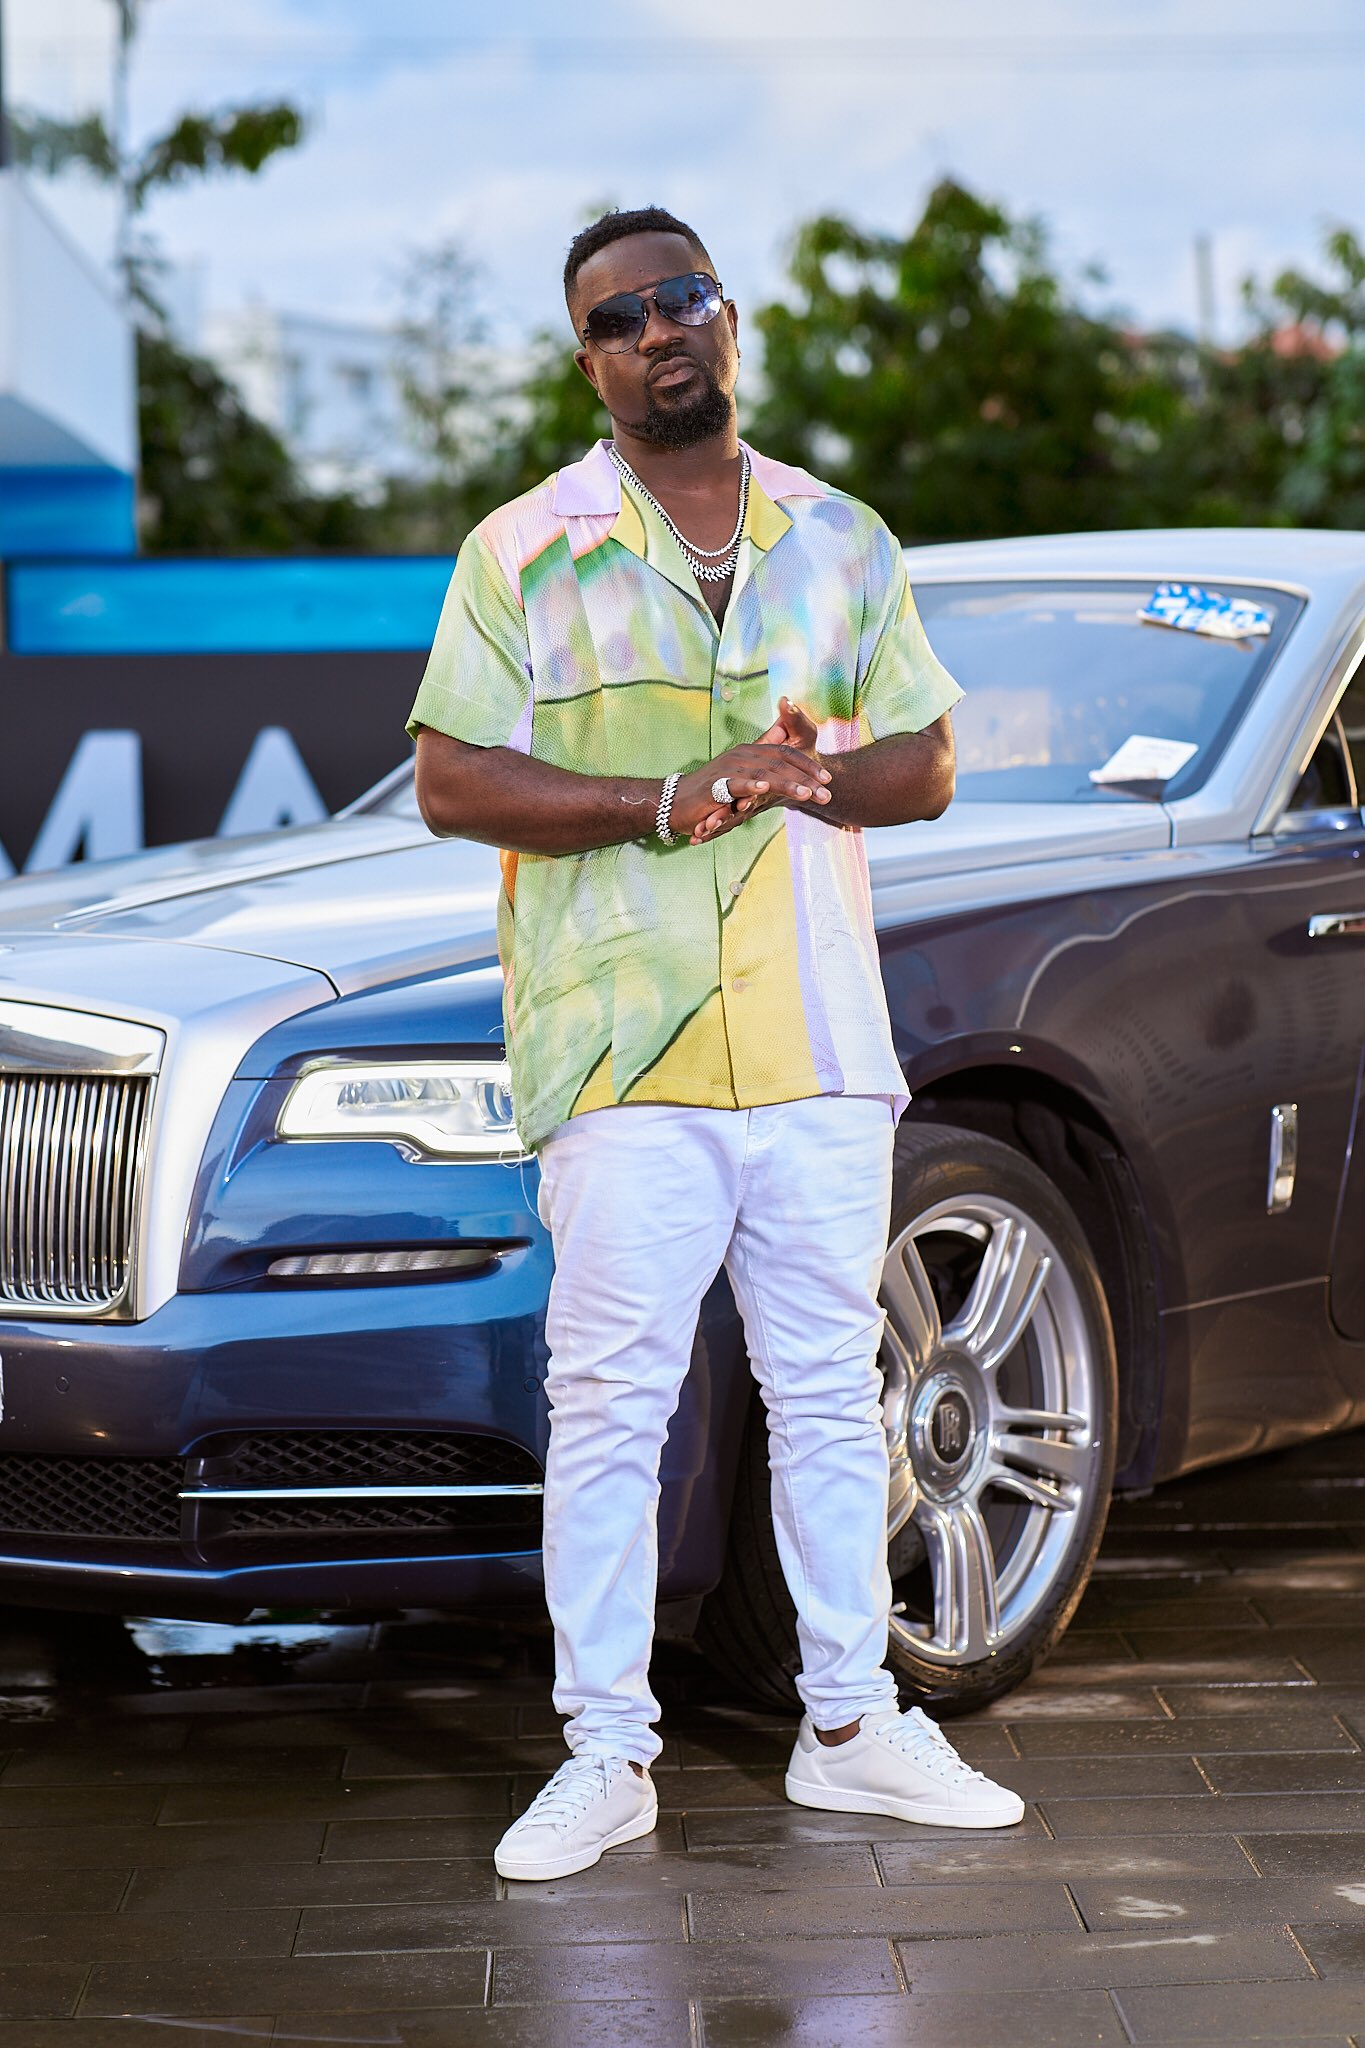 Sarkodie applauds Prez. Akufo-Addo and his government. See what he had to say about them